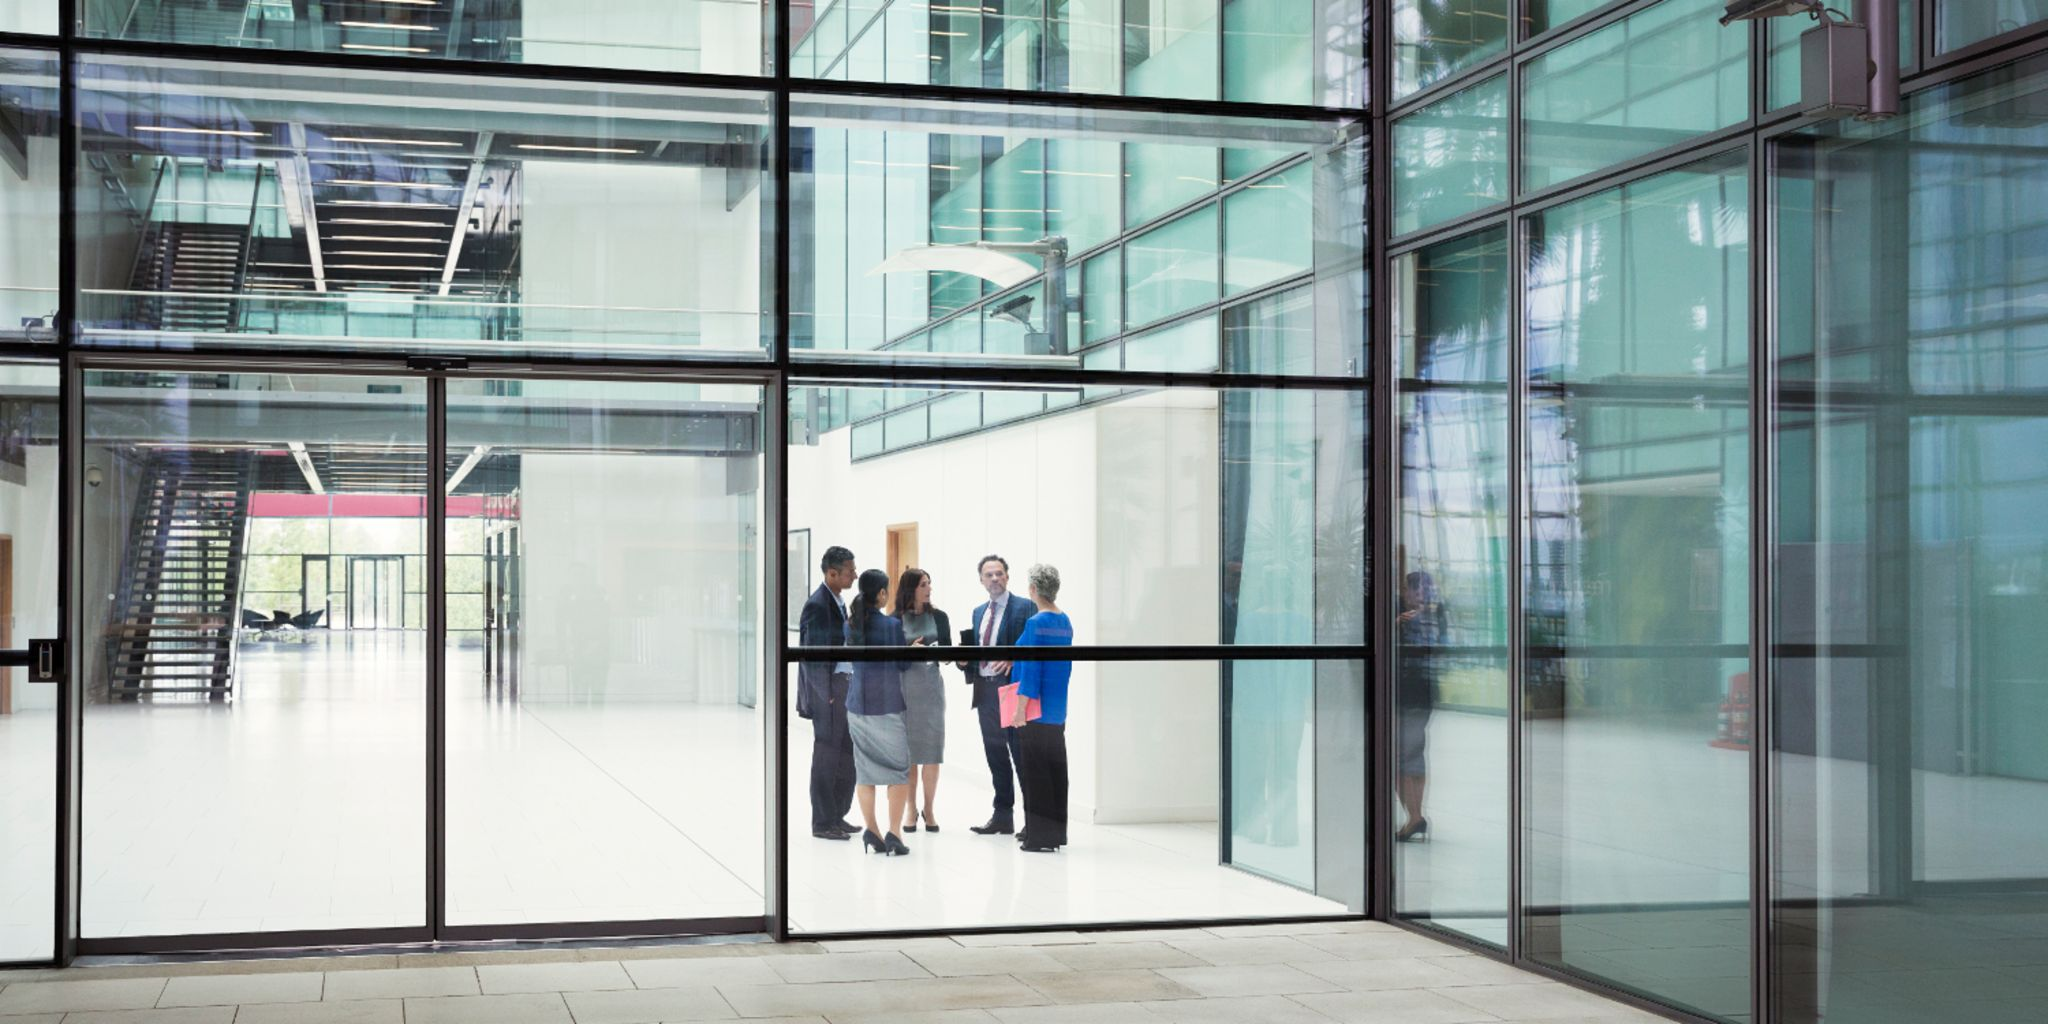 The sale of non-performing real estate portfolios: People standing in the entrance of an office building.